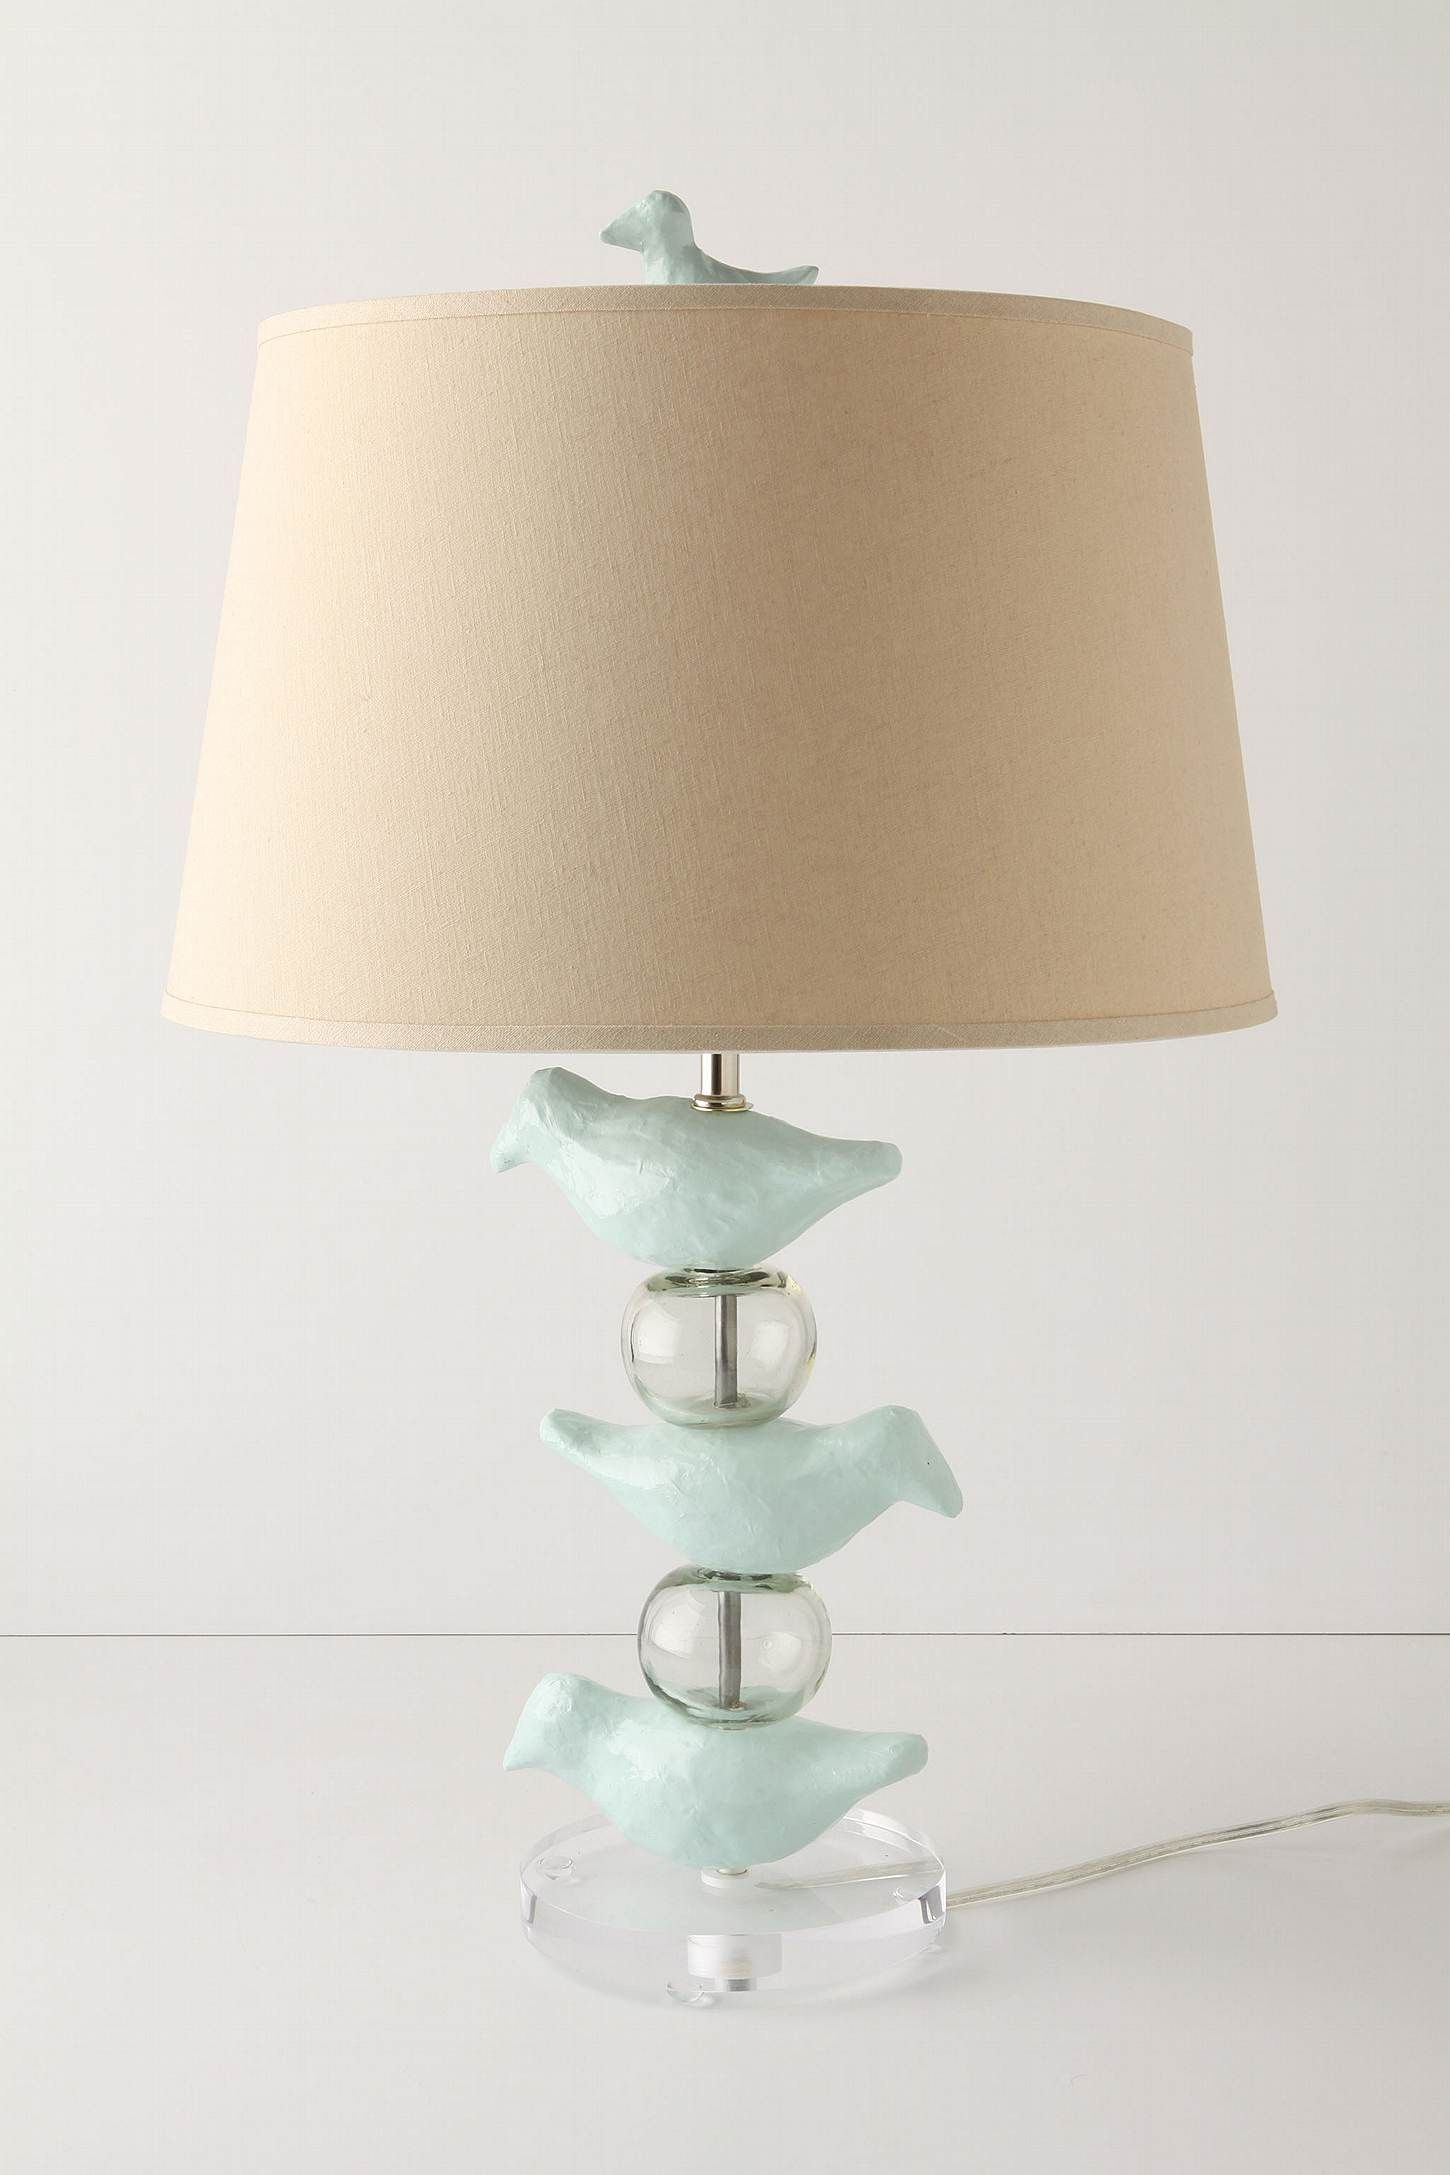 I heart this birdie lamp!  Too spendy for me, but I'm thinking about recreating it from a lamp kit.